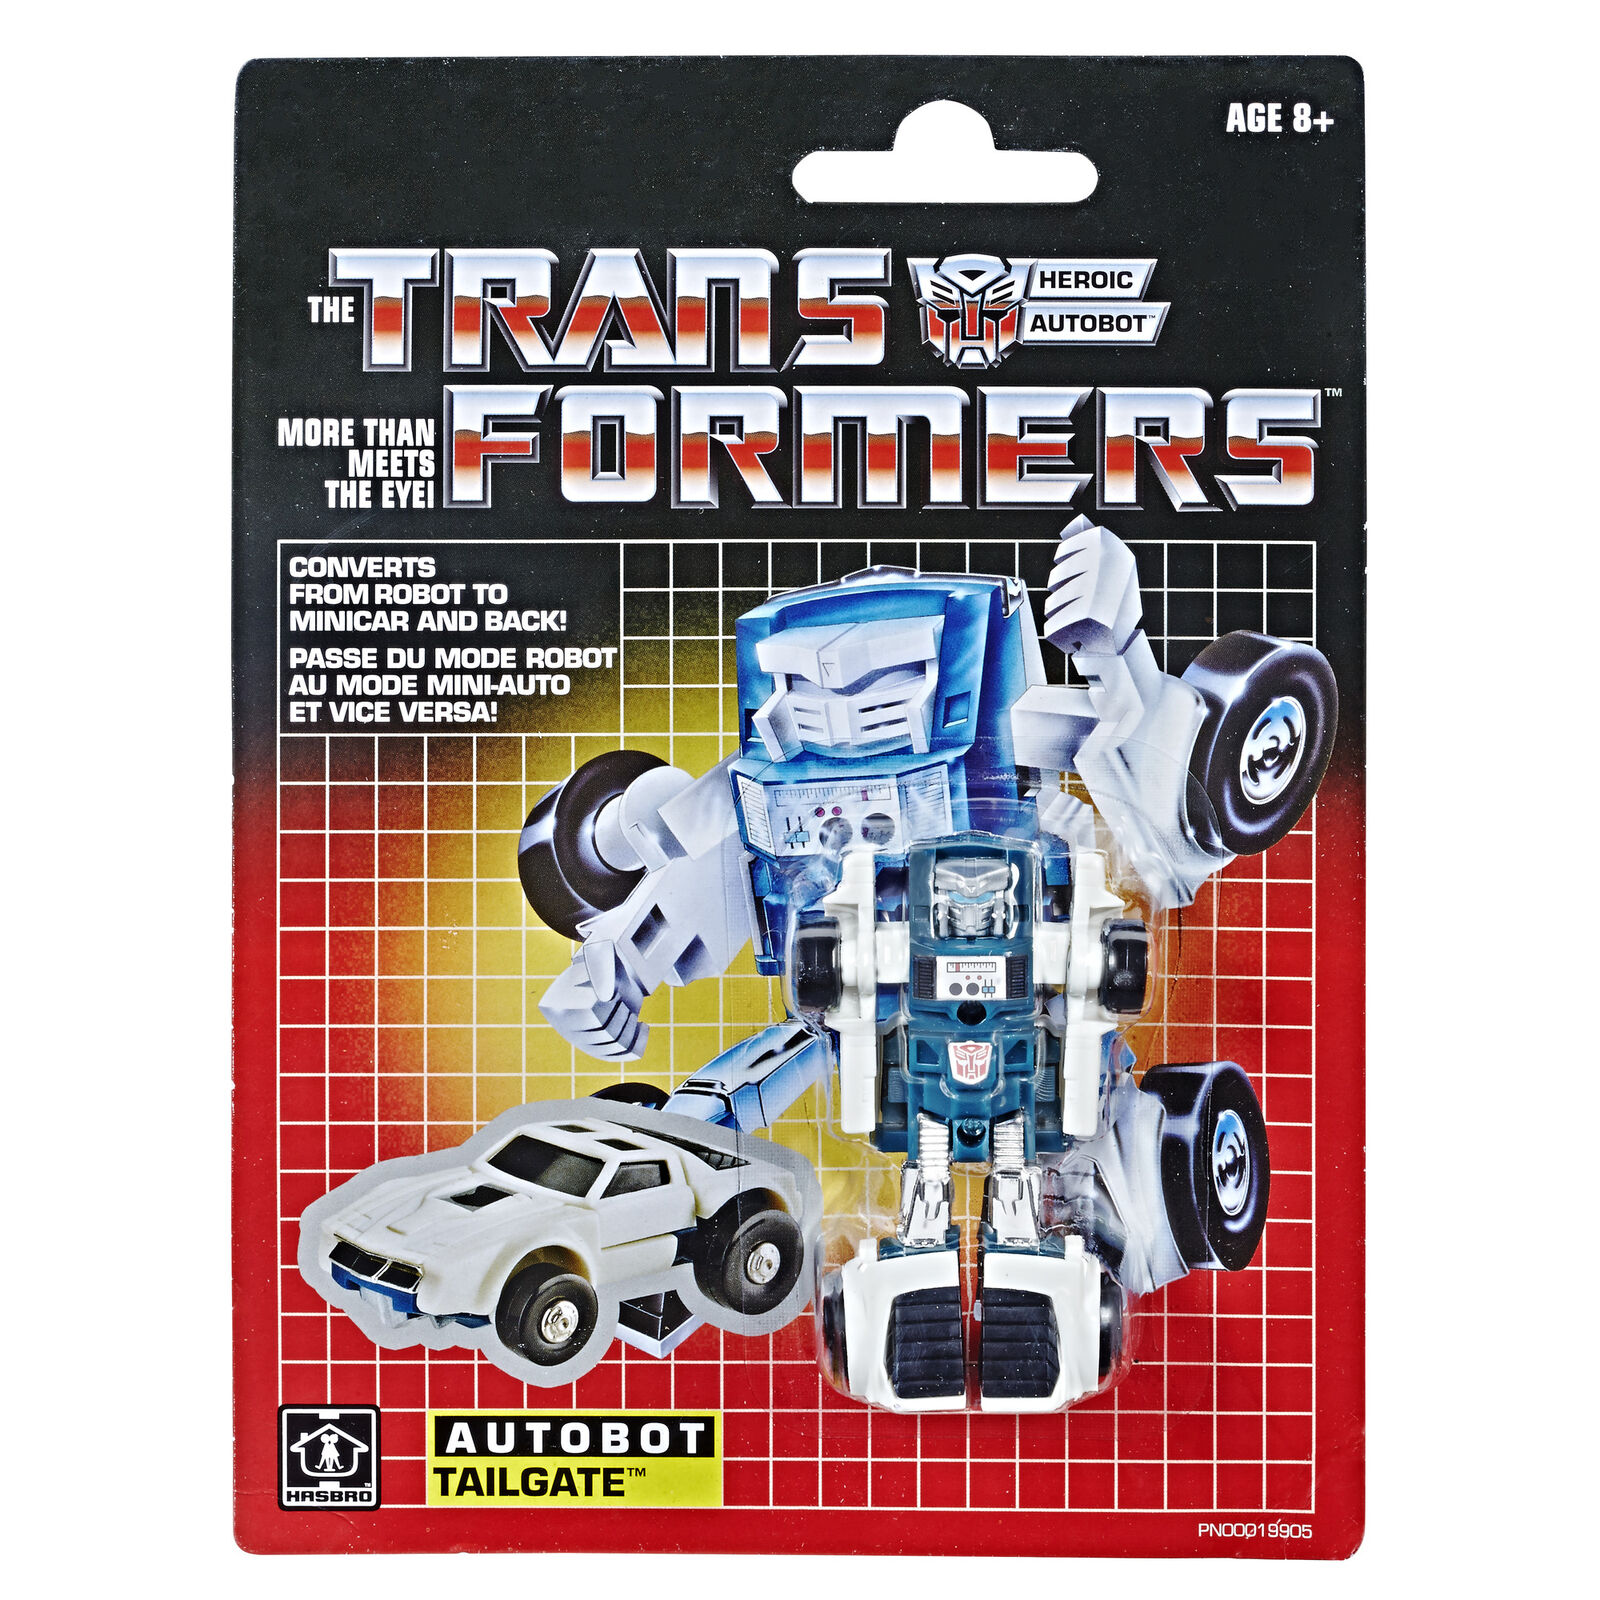 2018 Transformers Minibot Autobot TAILGATE Walmart Exclusive Sealed NEW